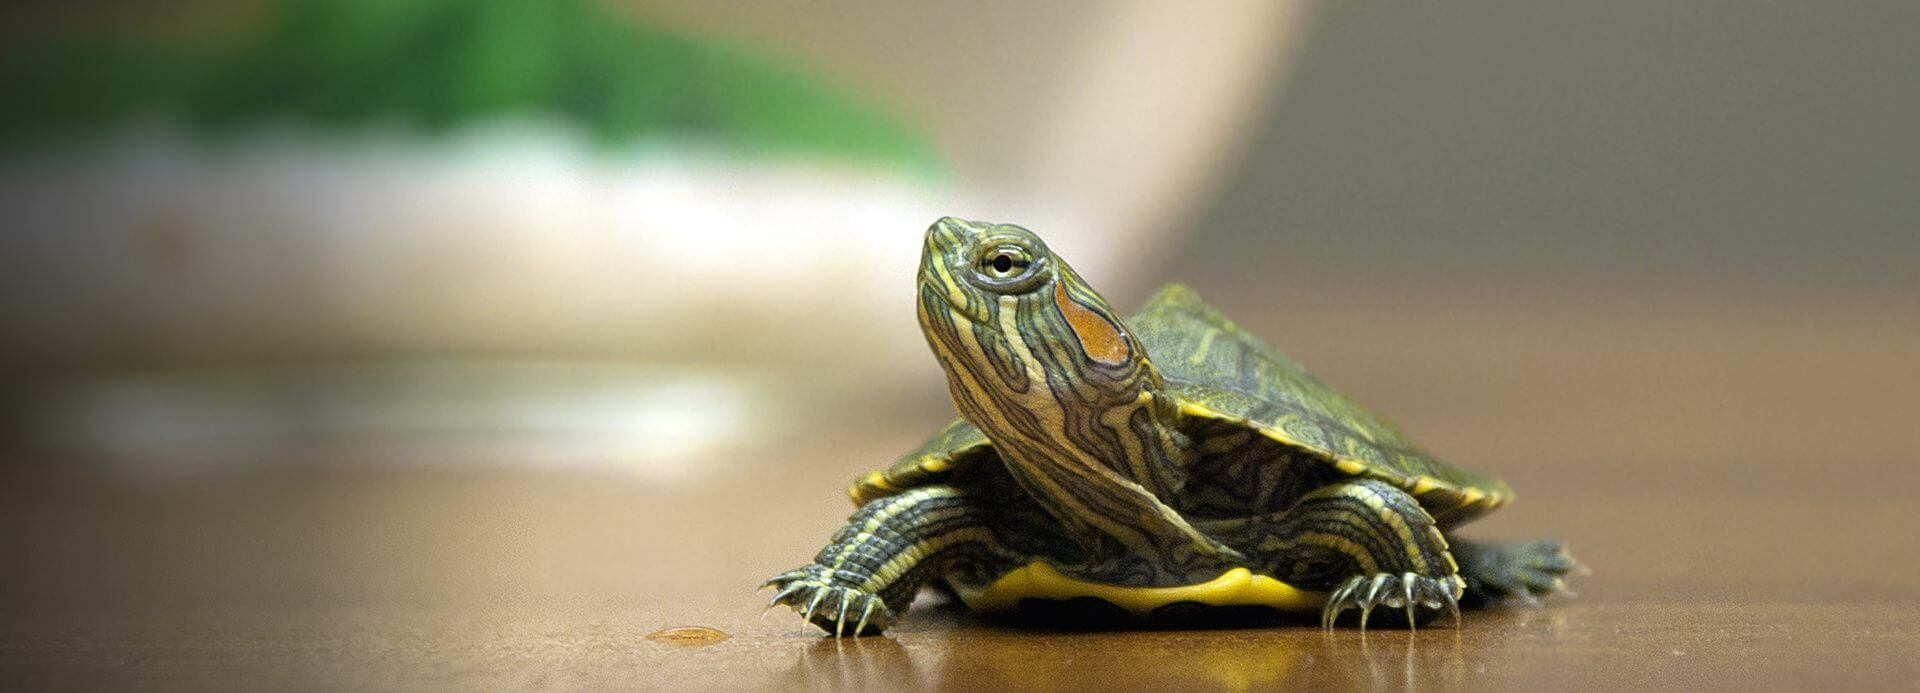 HD Quality Wallpaper   Collection: Animal, 1920x693 Reptile